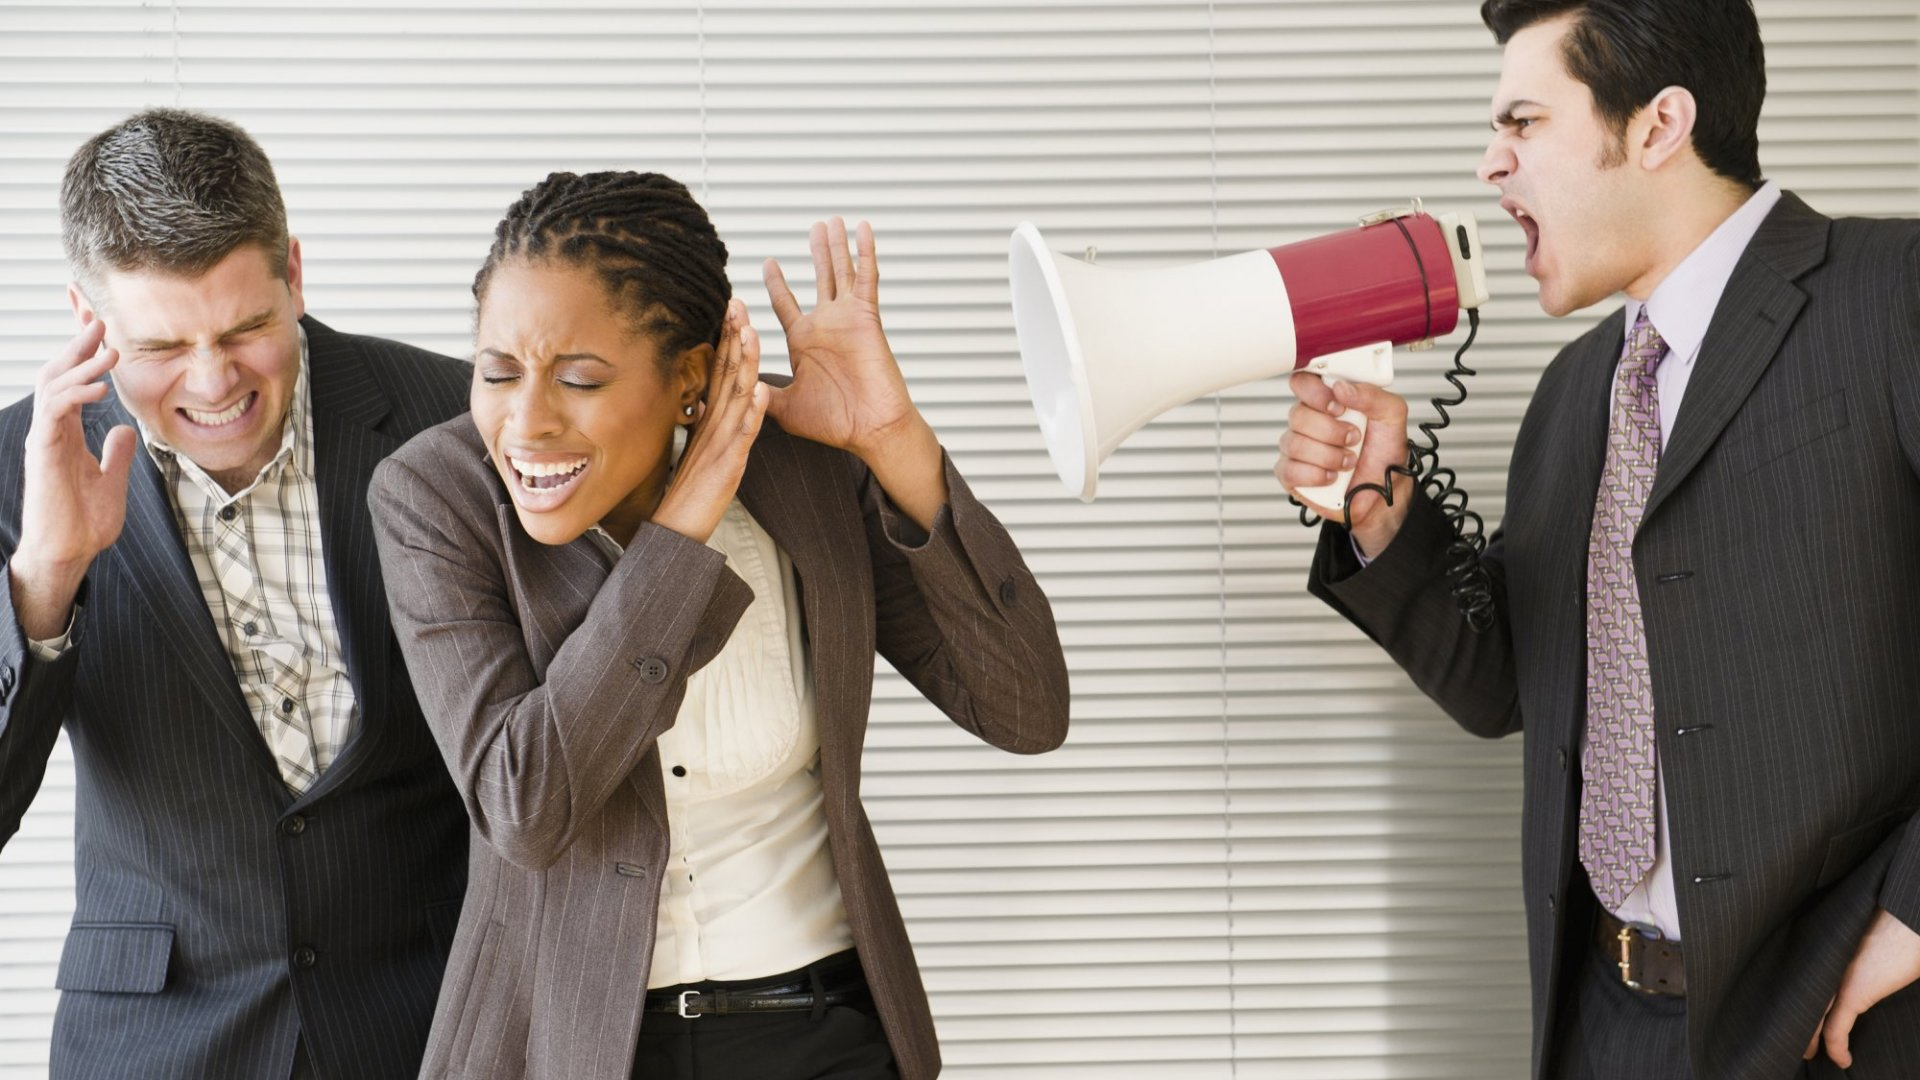 10 Signs Your Boss May Fire You (and What You Can Do About It)